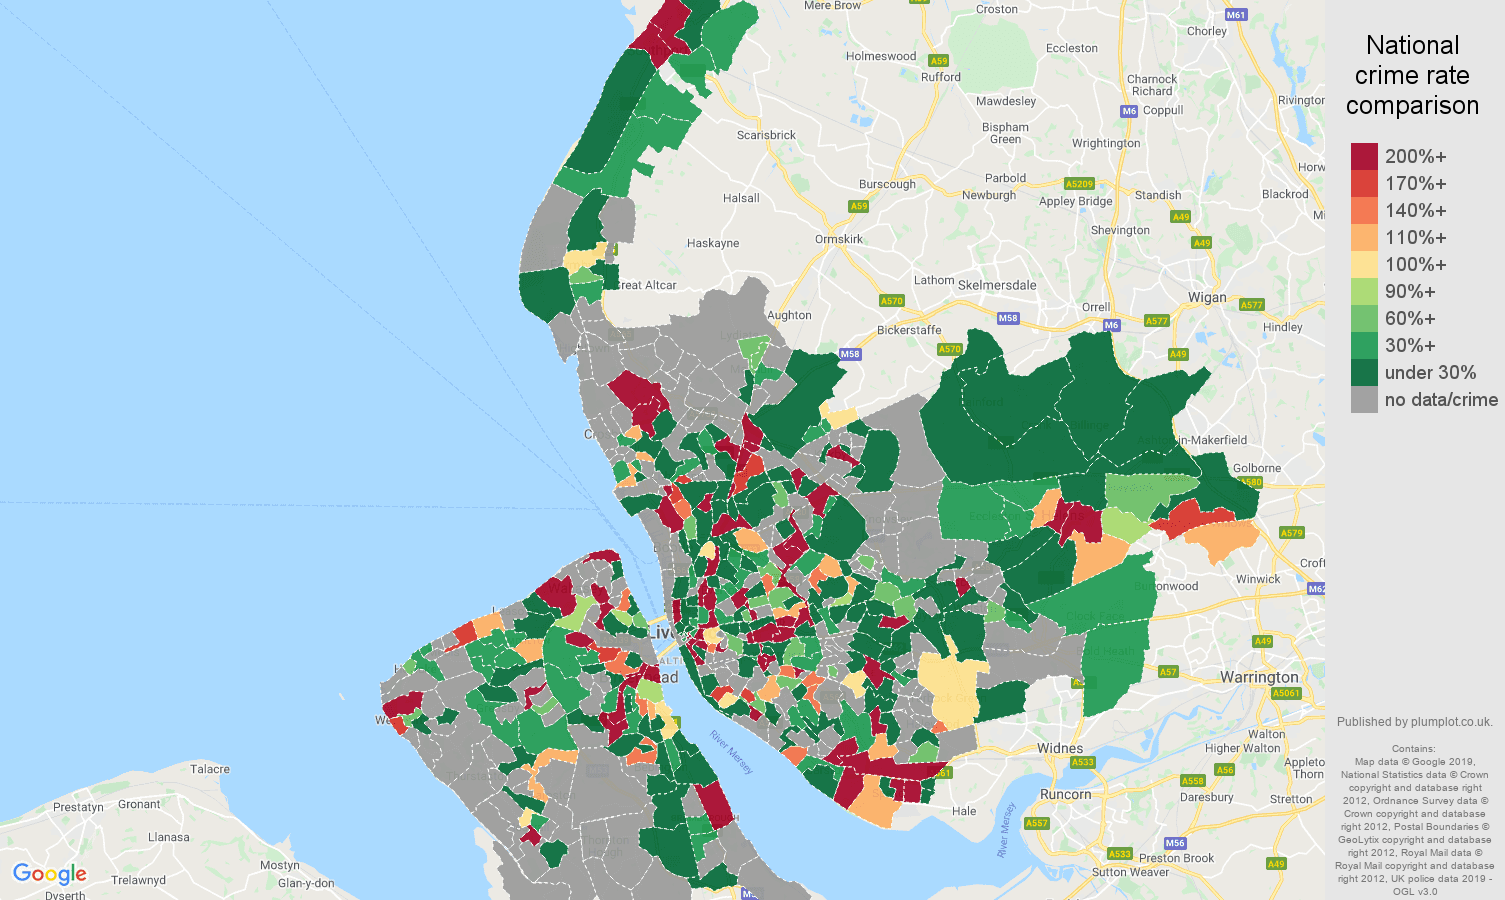 Merseyside shoplifting crime rate comparison map